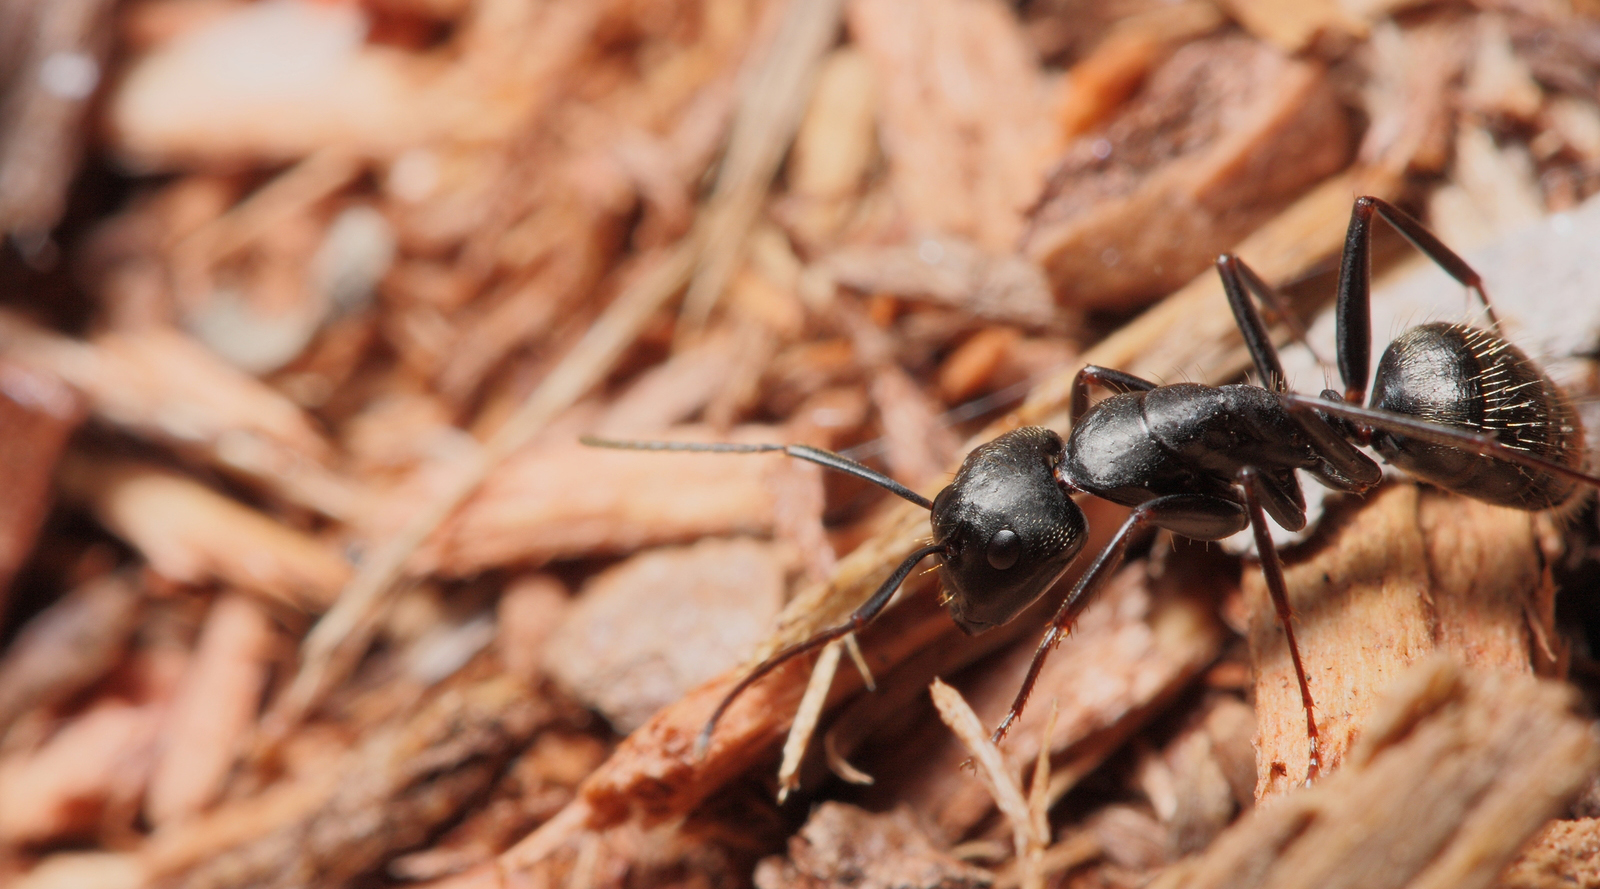 carpenter ants vs termites and the differences between them